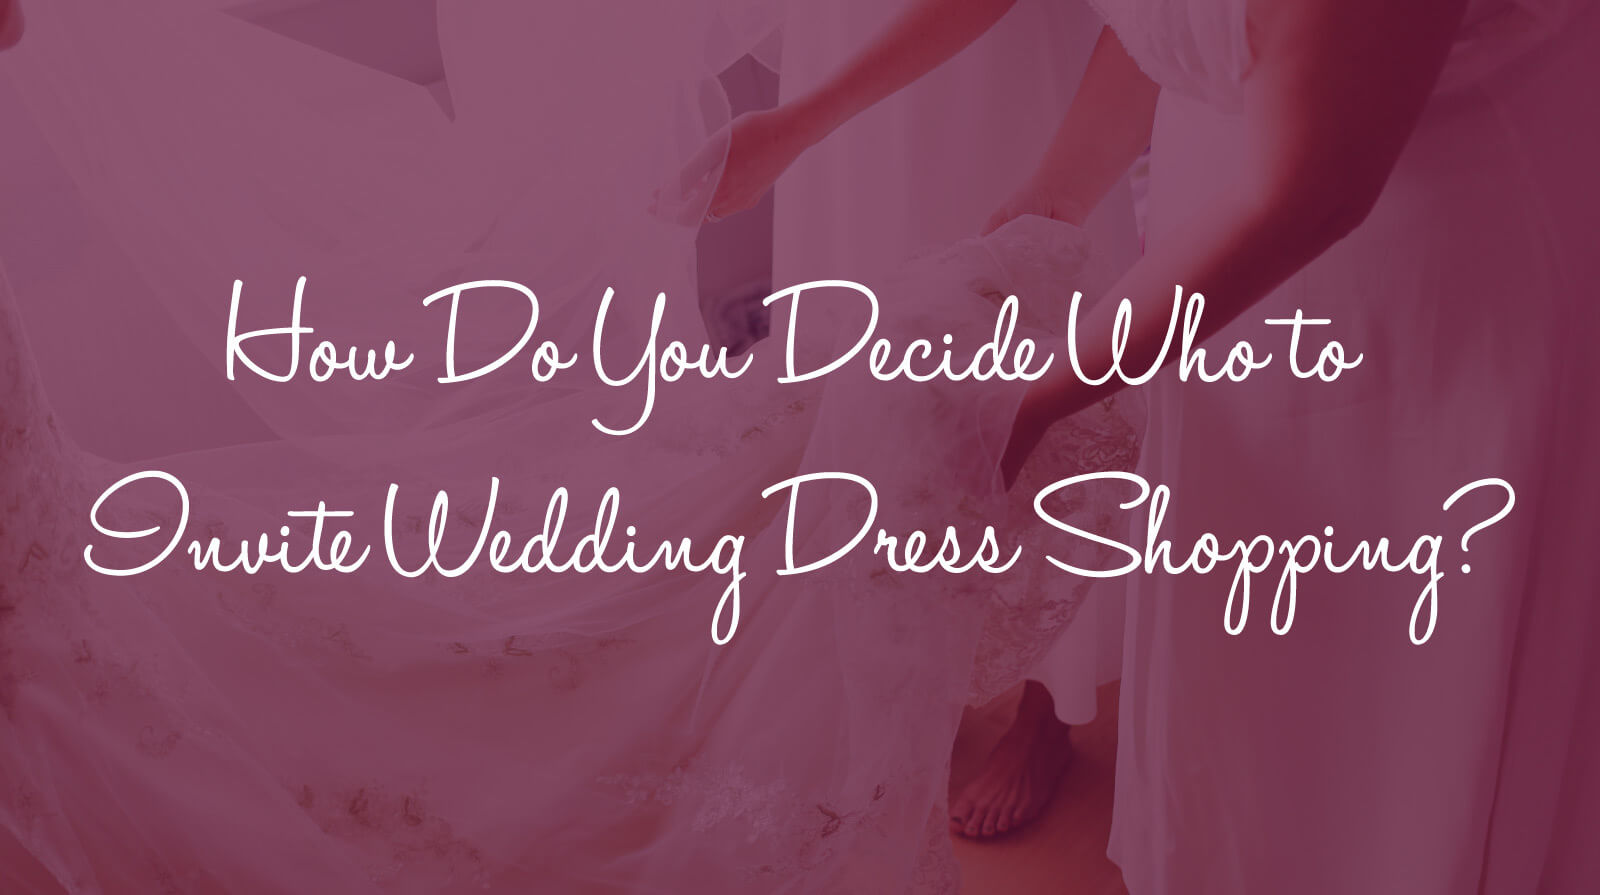 How Do You Decide Who to Invite Wedding Dress Shopping